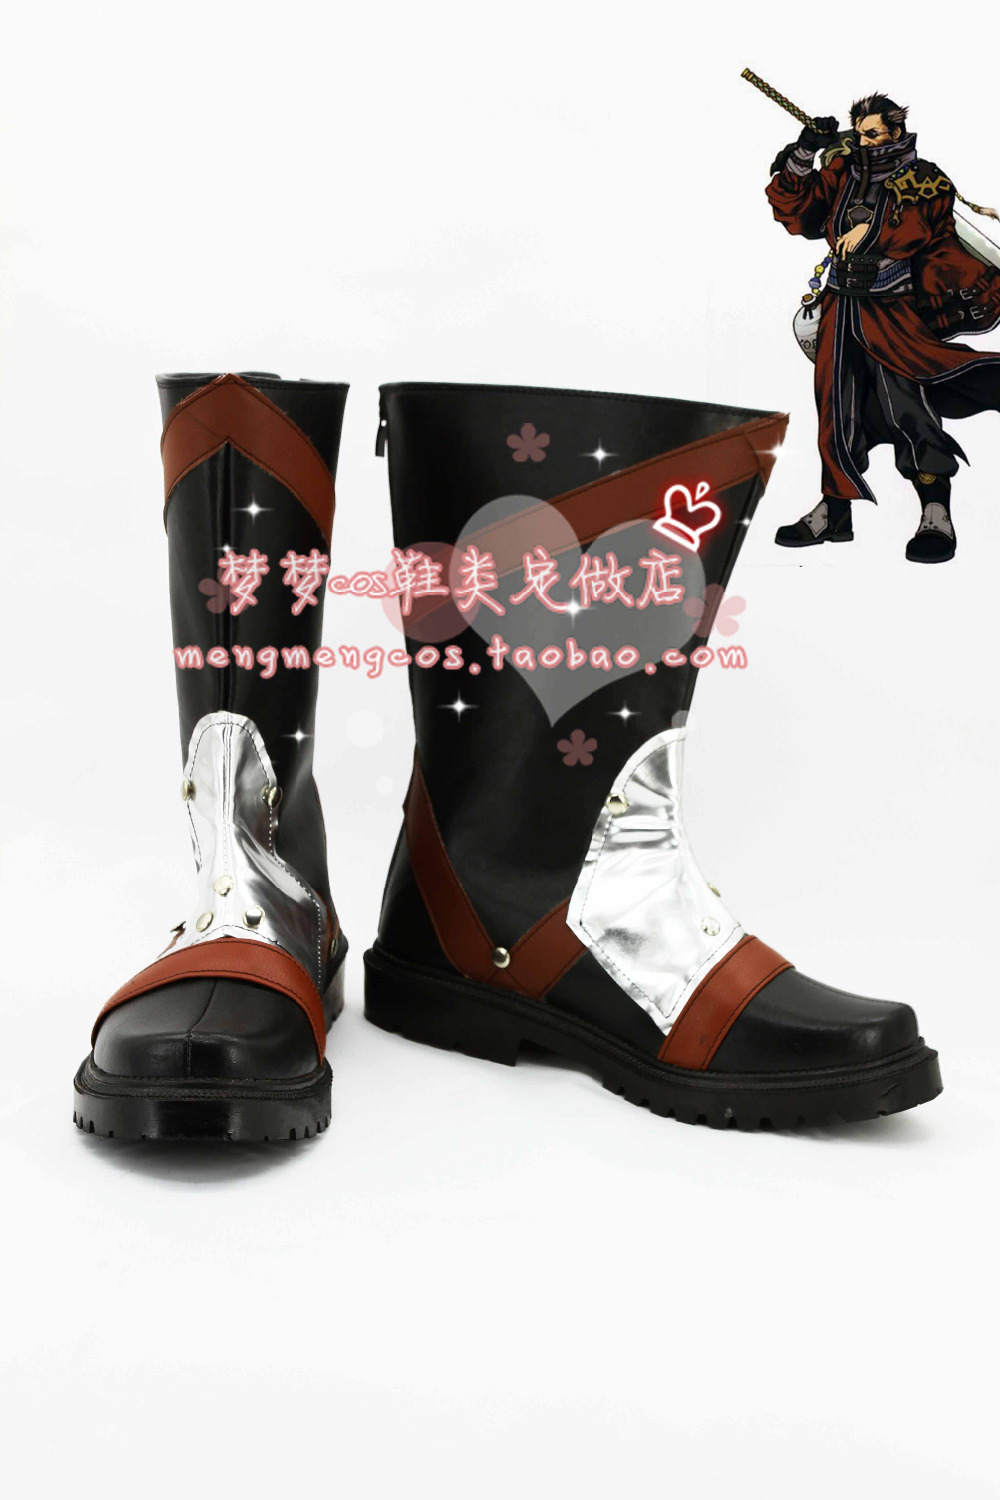 auron boots anime shoes custom made